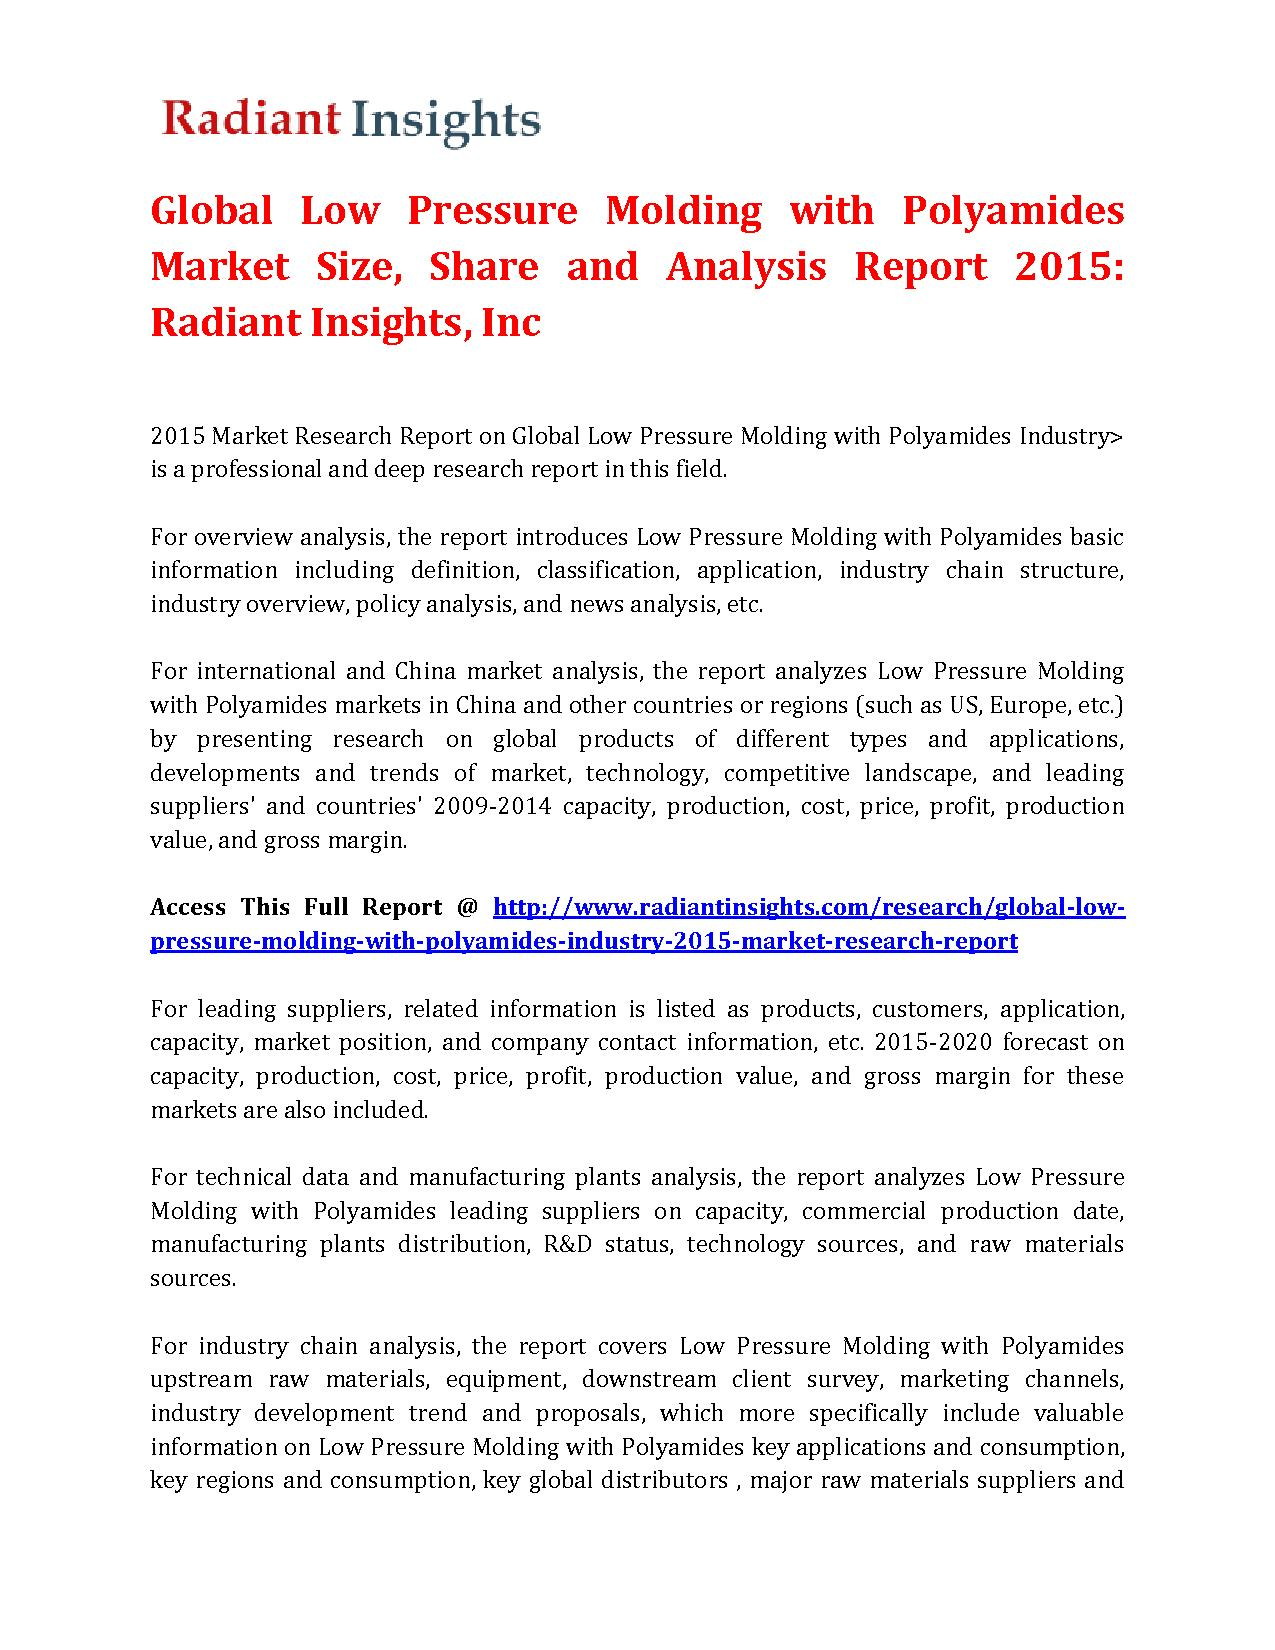 Global Low Pressure Molding with Polyamides Market Size